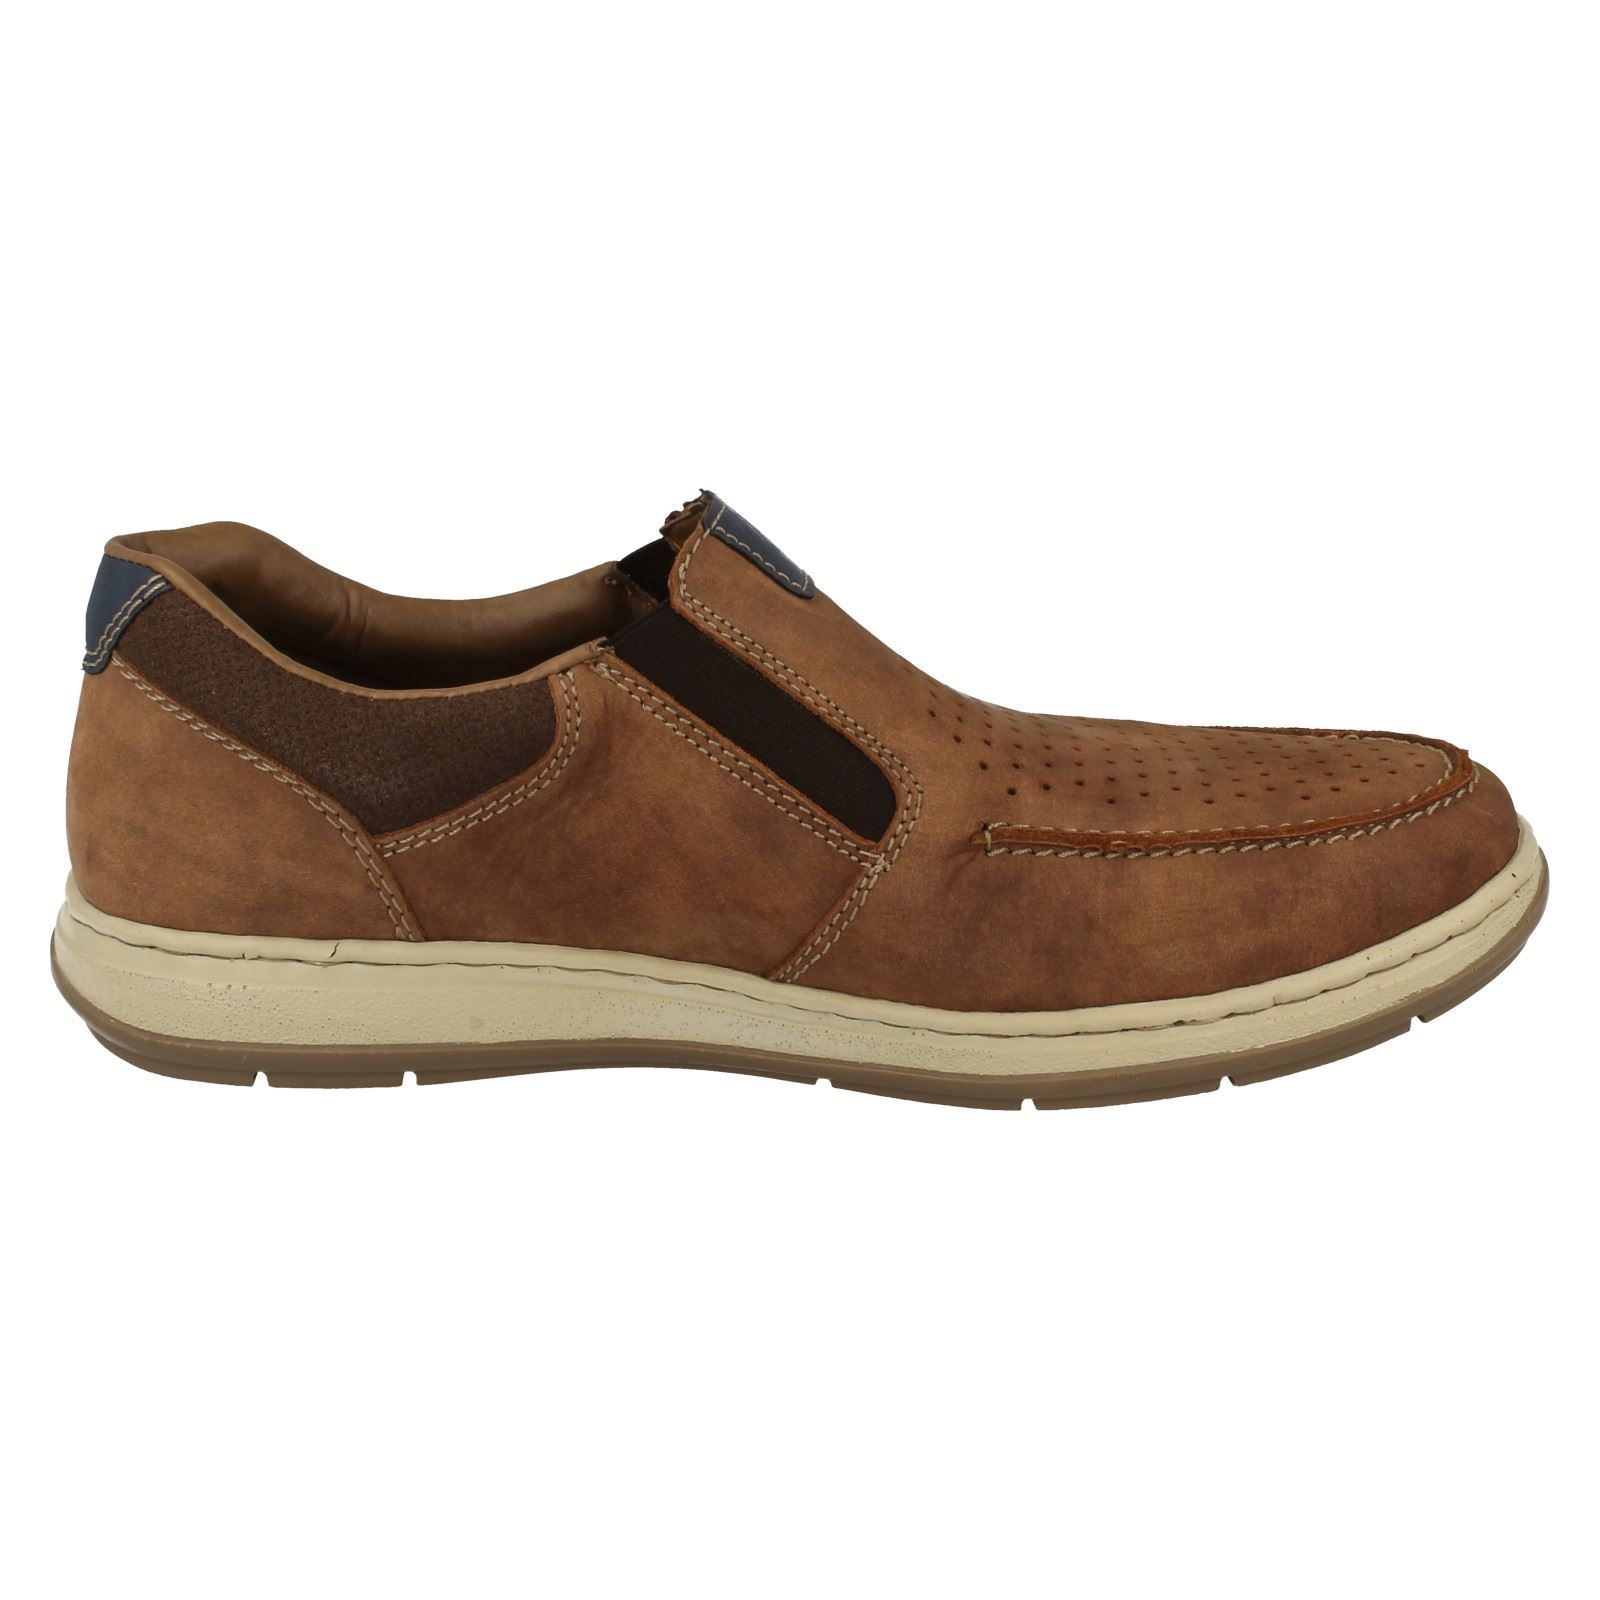 Details zu Mens Rieker Moccasin Style Slip On Shoes 17367